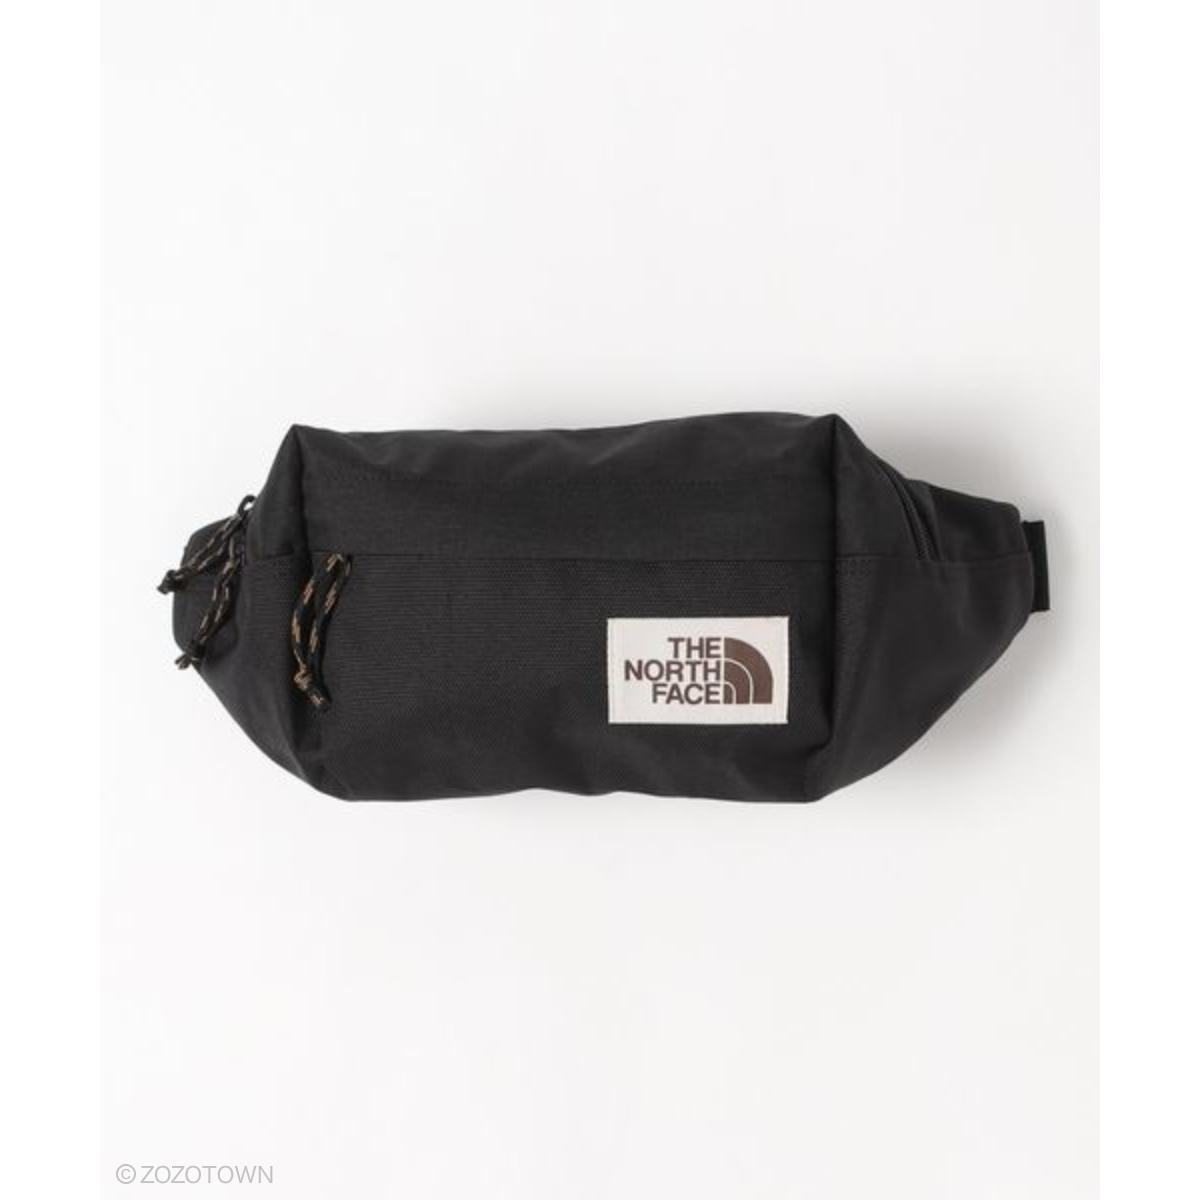 【THE NORTH FACE】 THE NORTH FACE(ザノースフェイス) LUMBAR PACKウエストバッグ